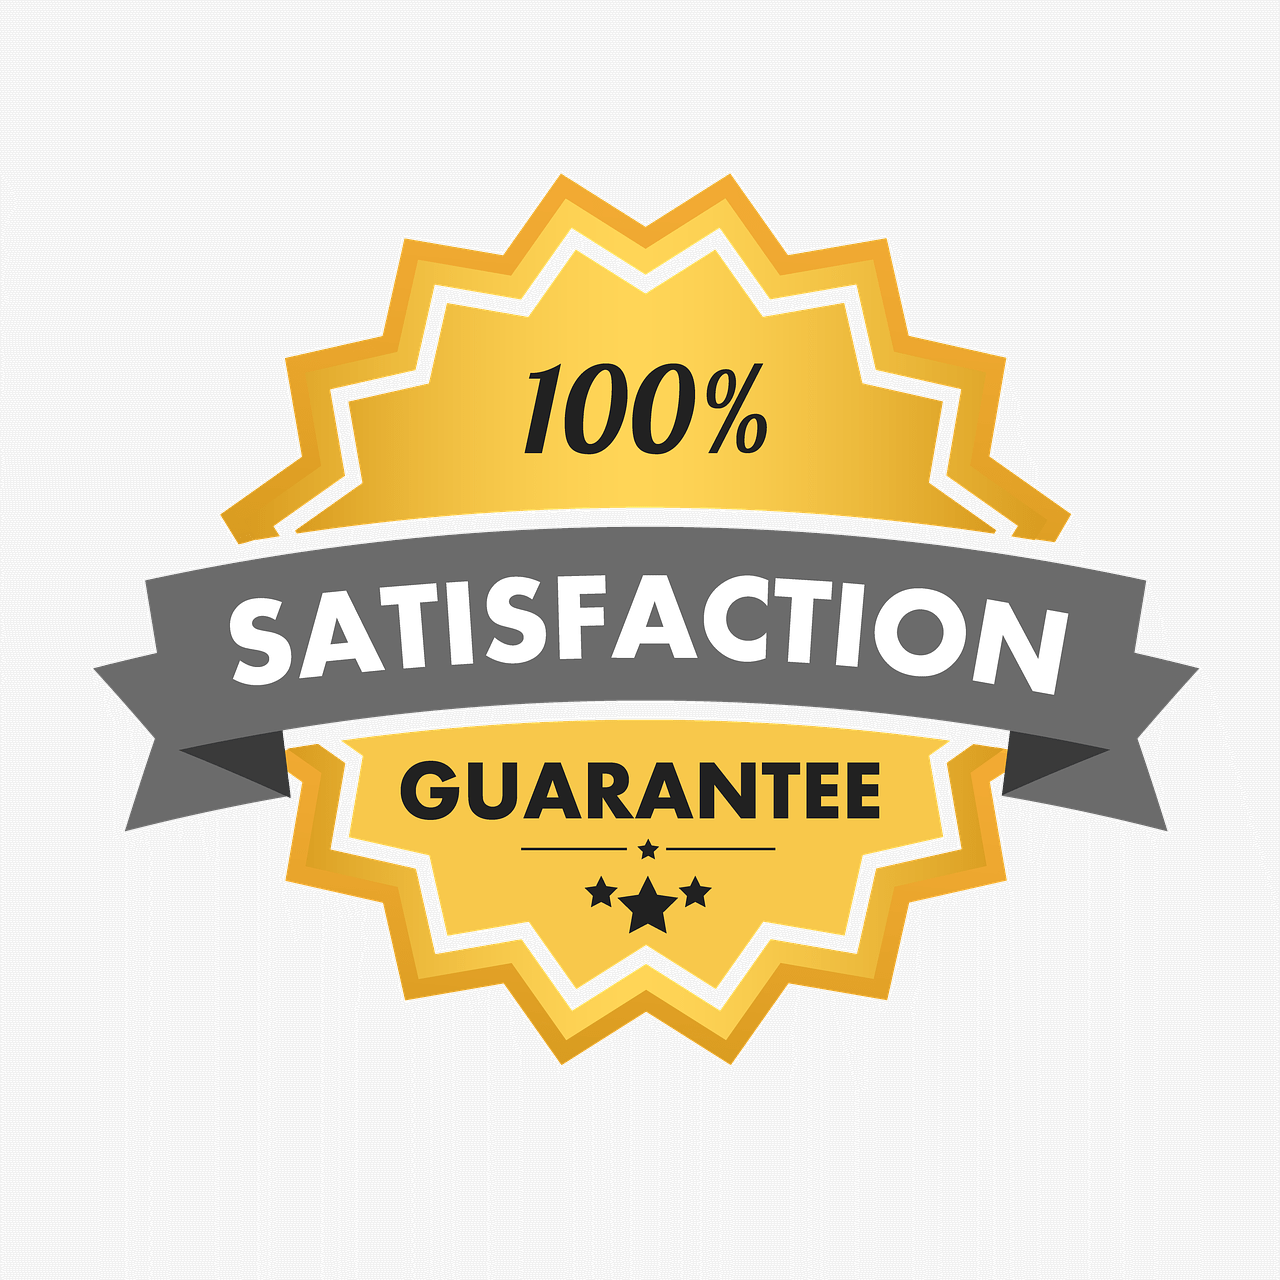 satisfaction-guarantee-large